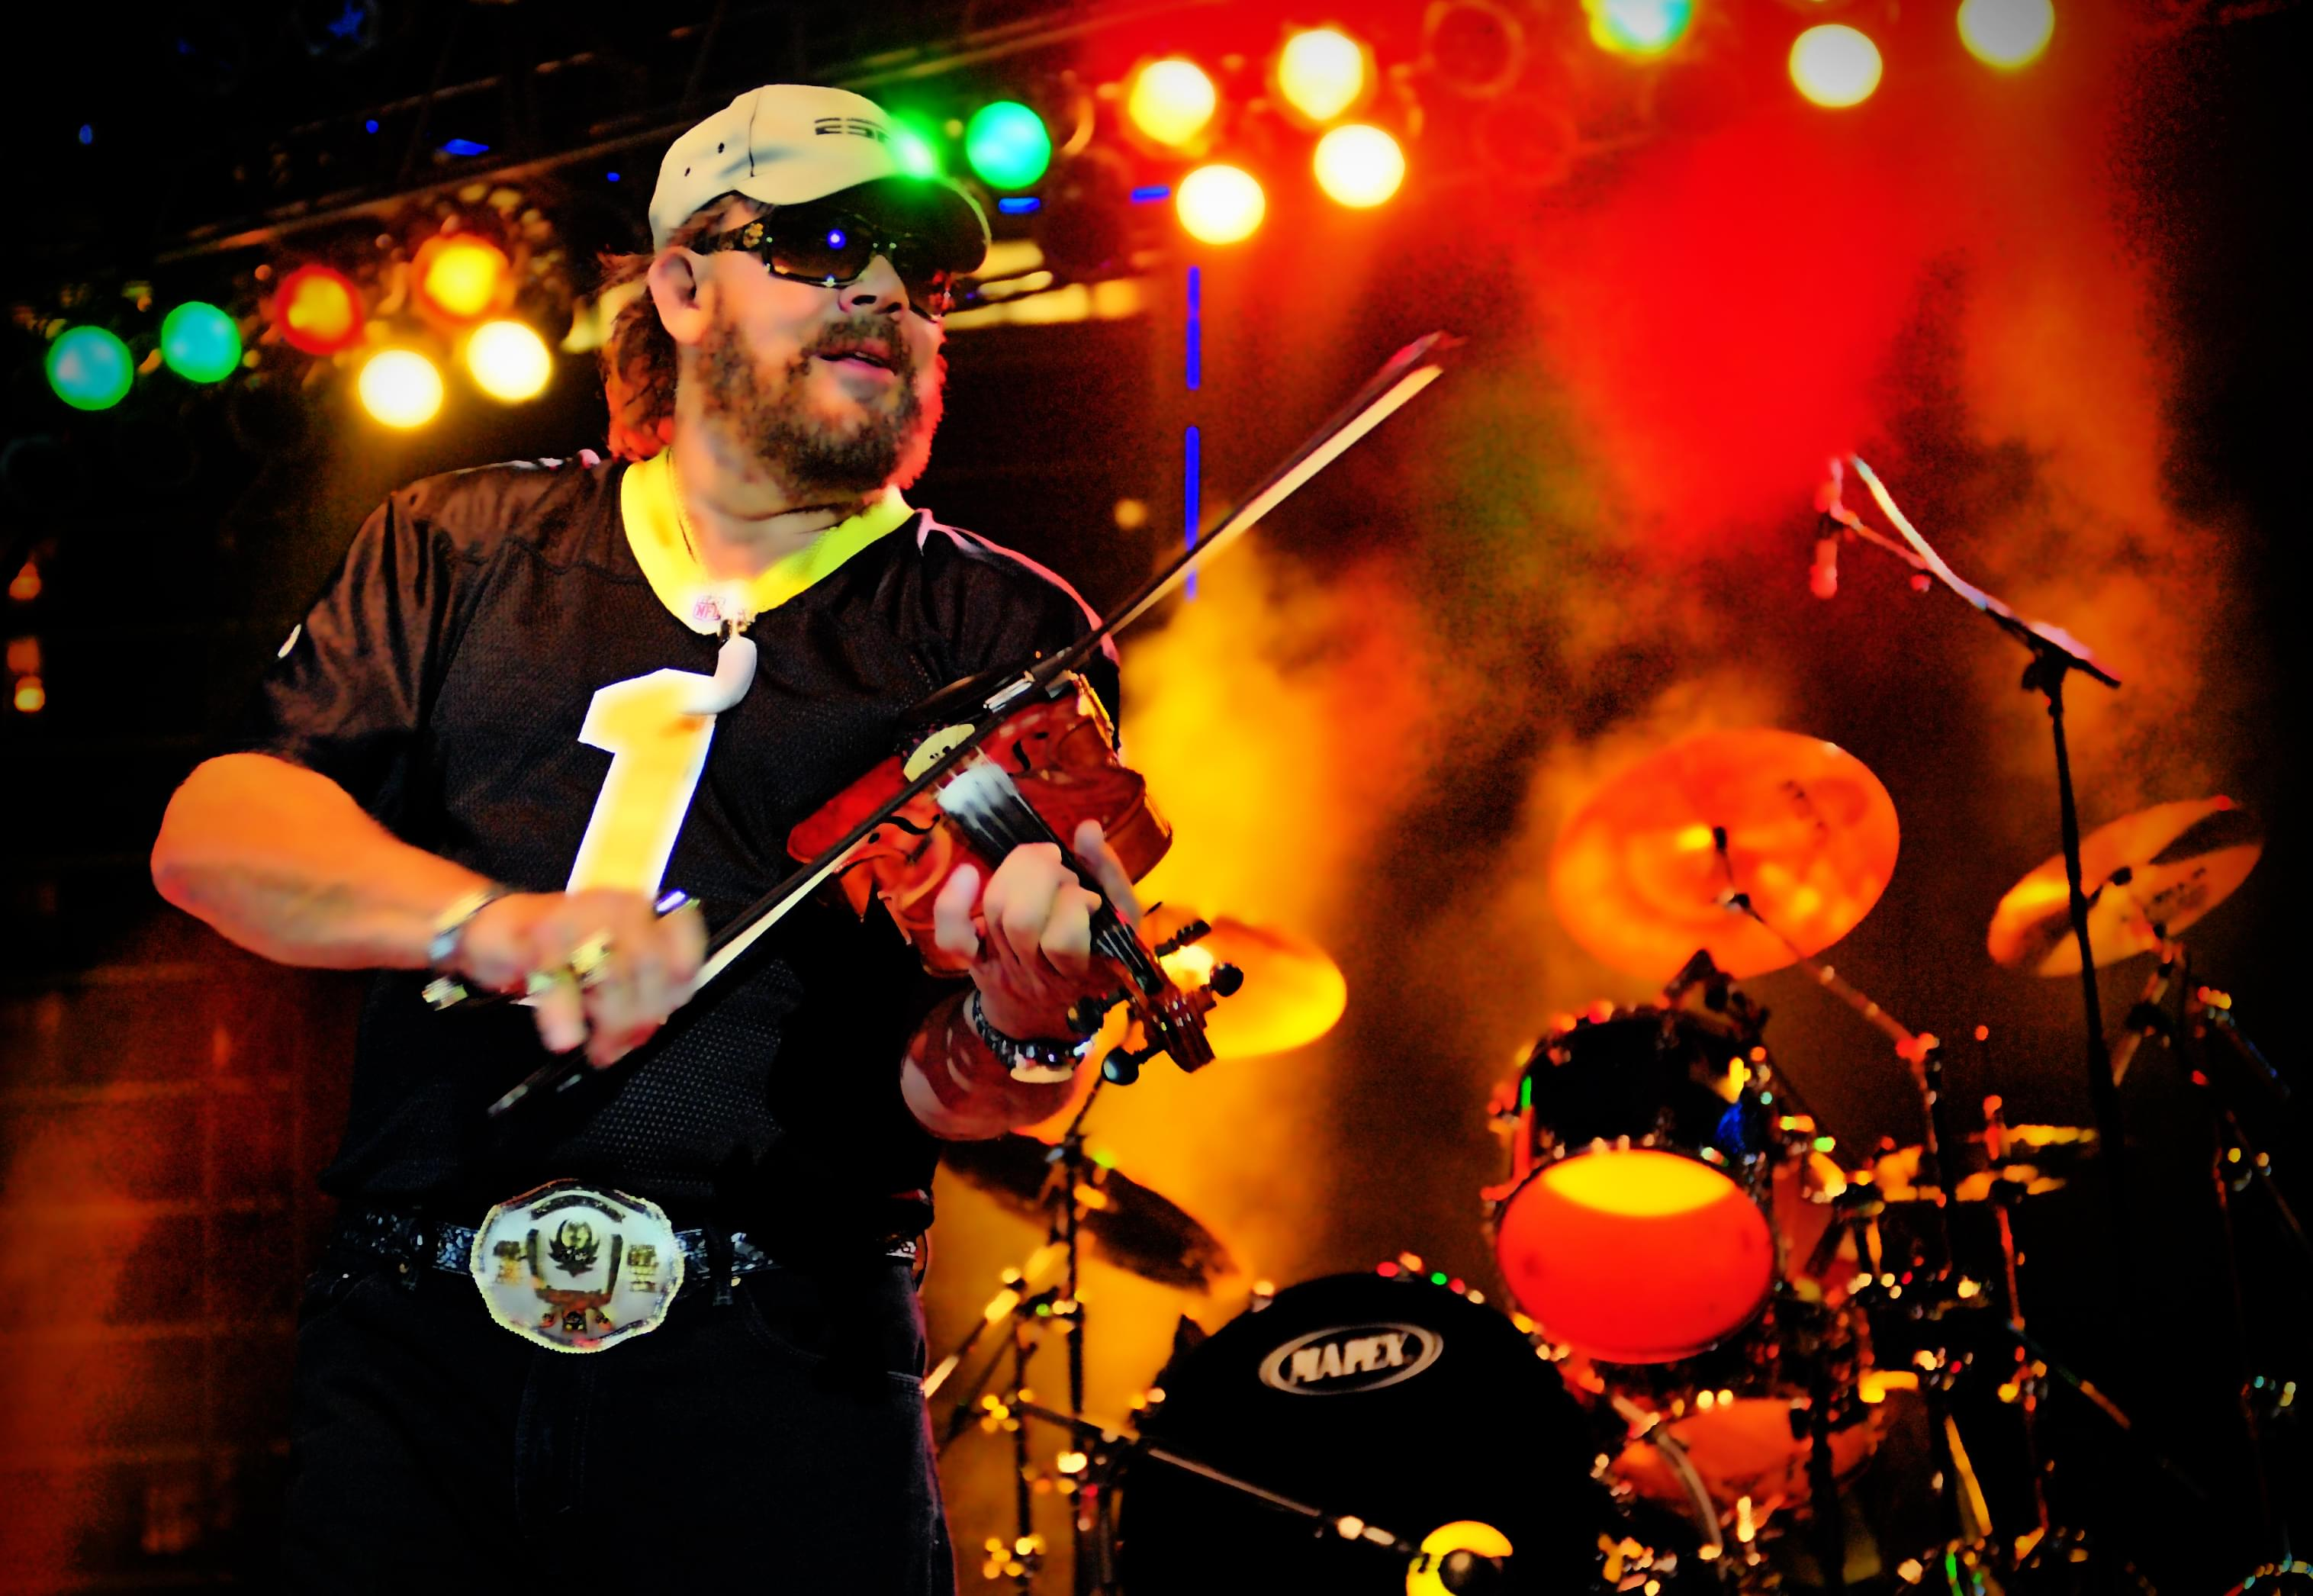 ESPN to Drop Hank Williams Jr. Theme Amid Pandemic